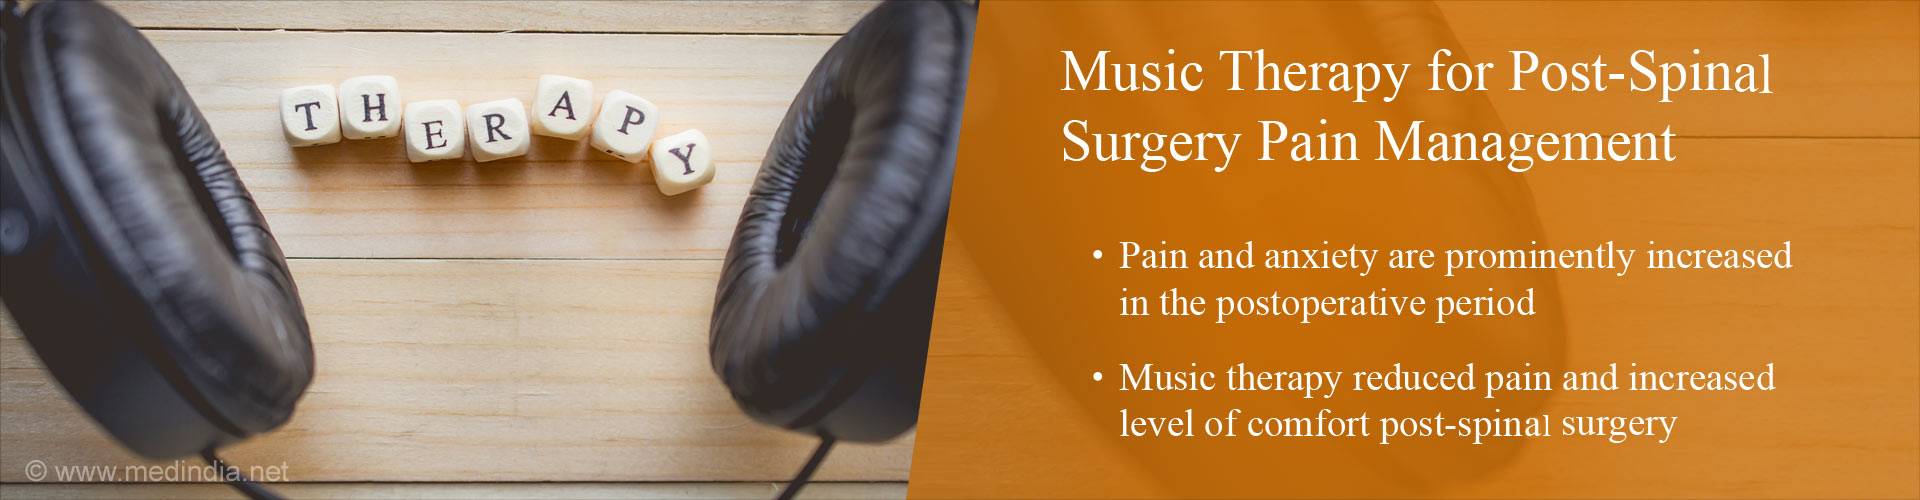 Music therapy for post-spine surgery pain management - Pain and anxiety are prominently increased in the post-operative period - Music therapy reduced pain and increased level of comfort post-spine surgery